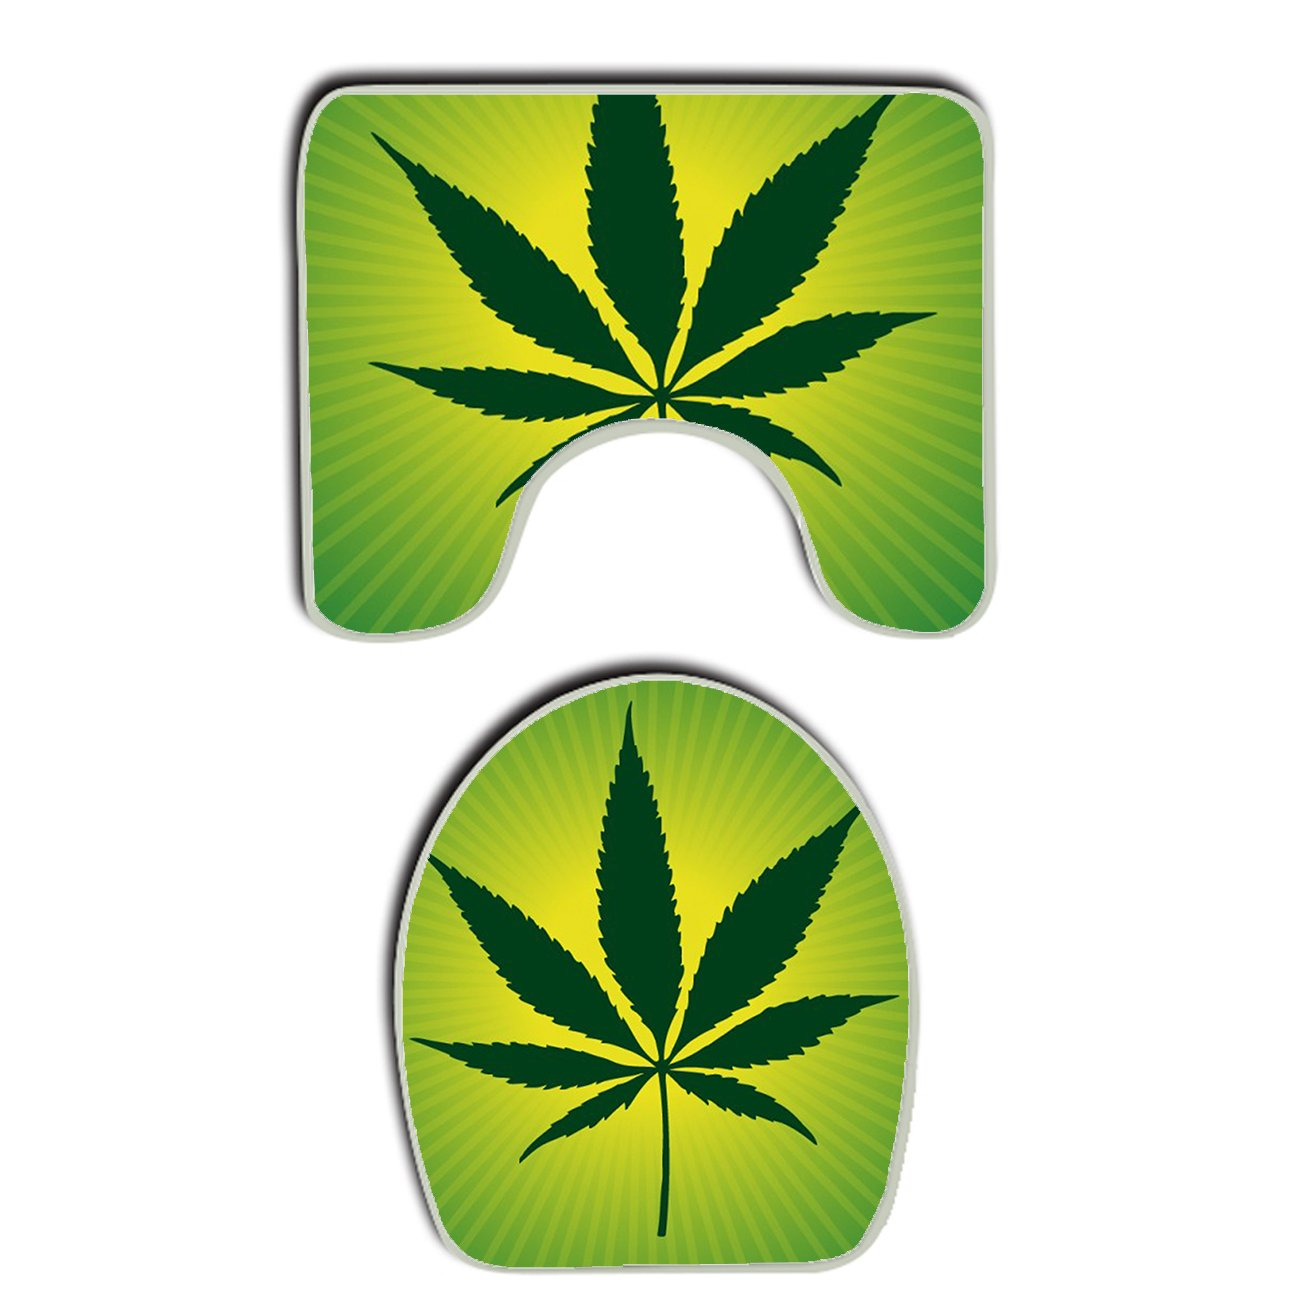 AMERICAN TANG Marijuana weed Leaf green Bathroom Carpet Rug, Non-Slip 2 Piece Bathroom Mat Set Decoration